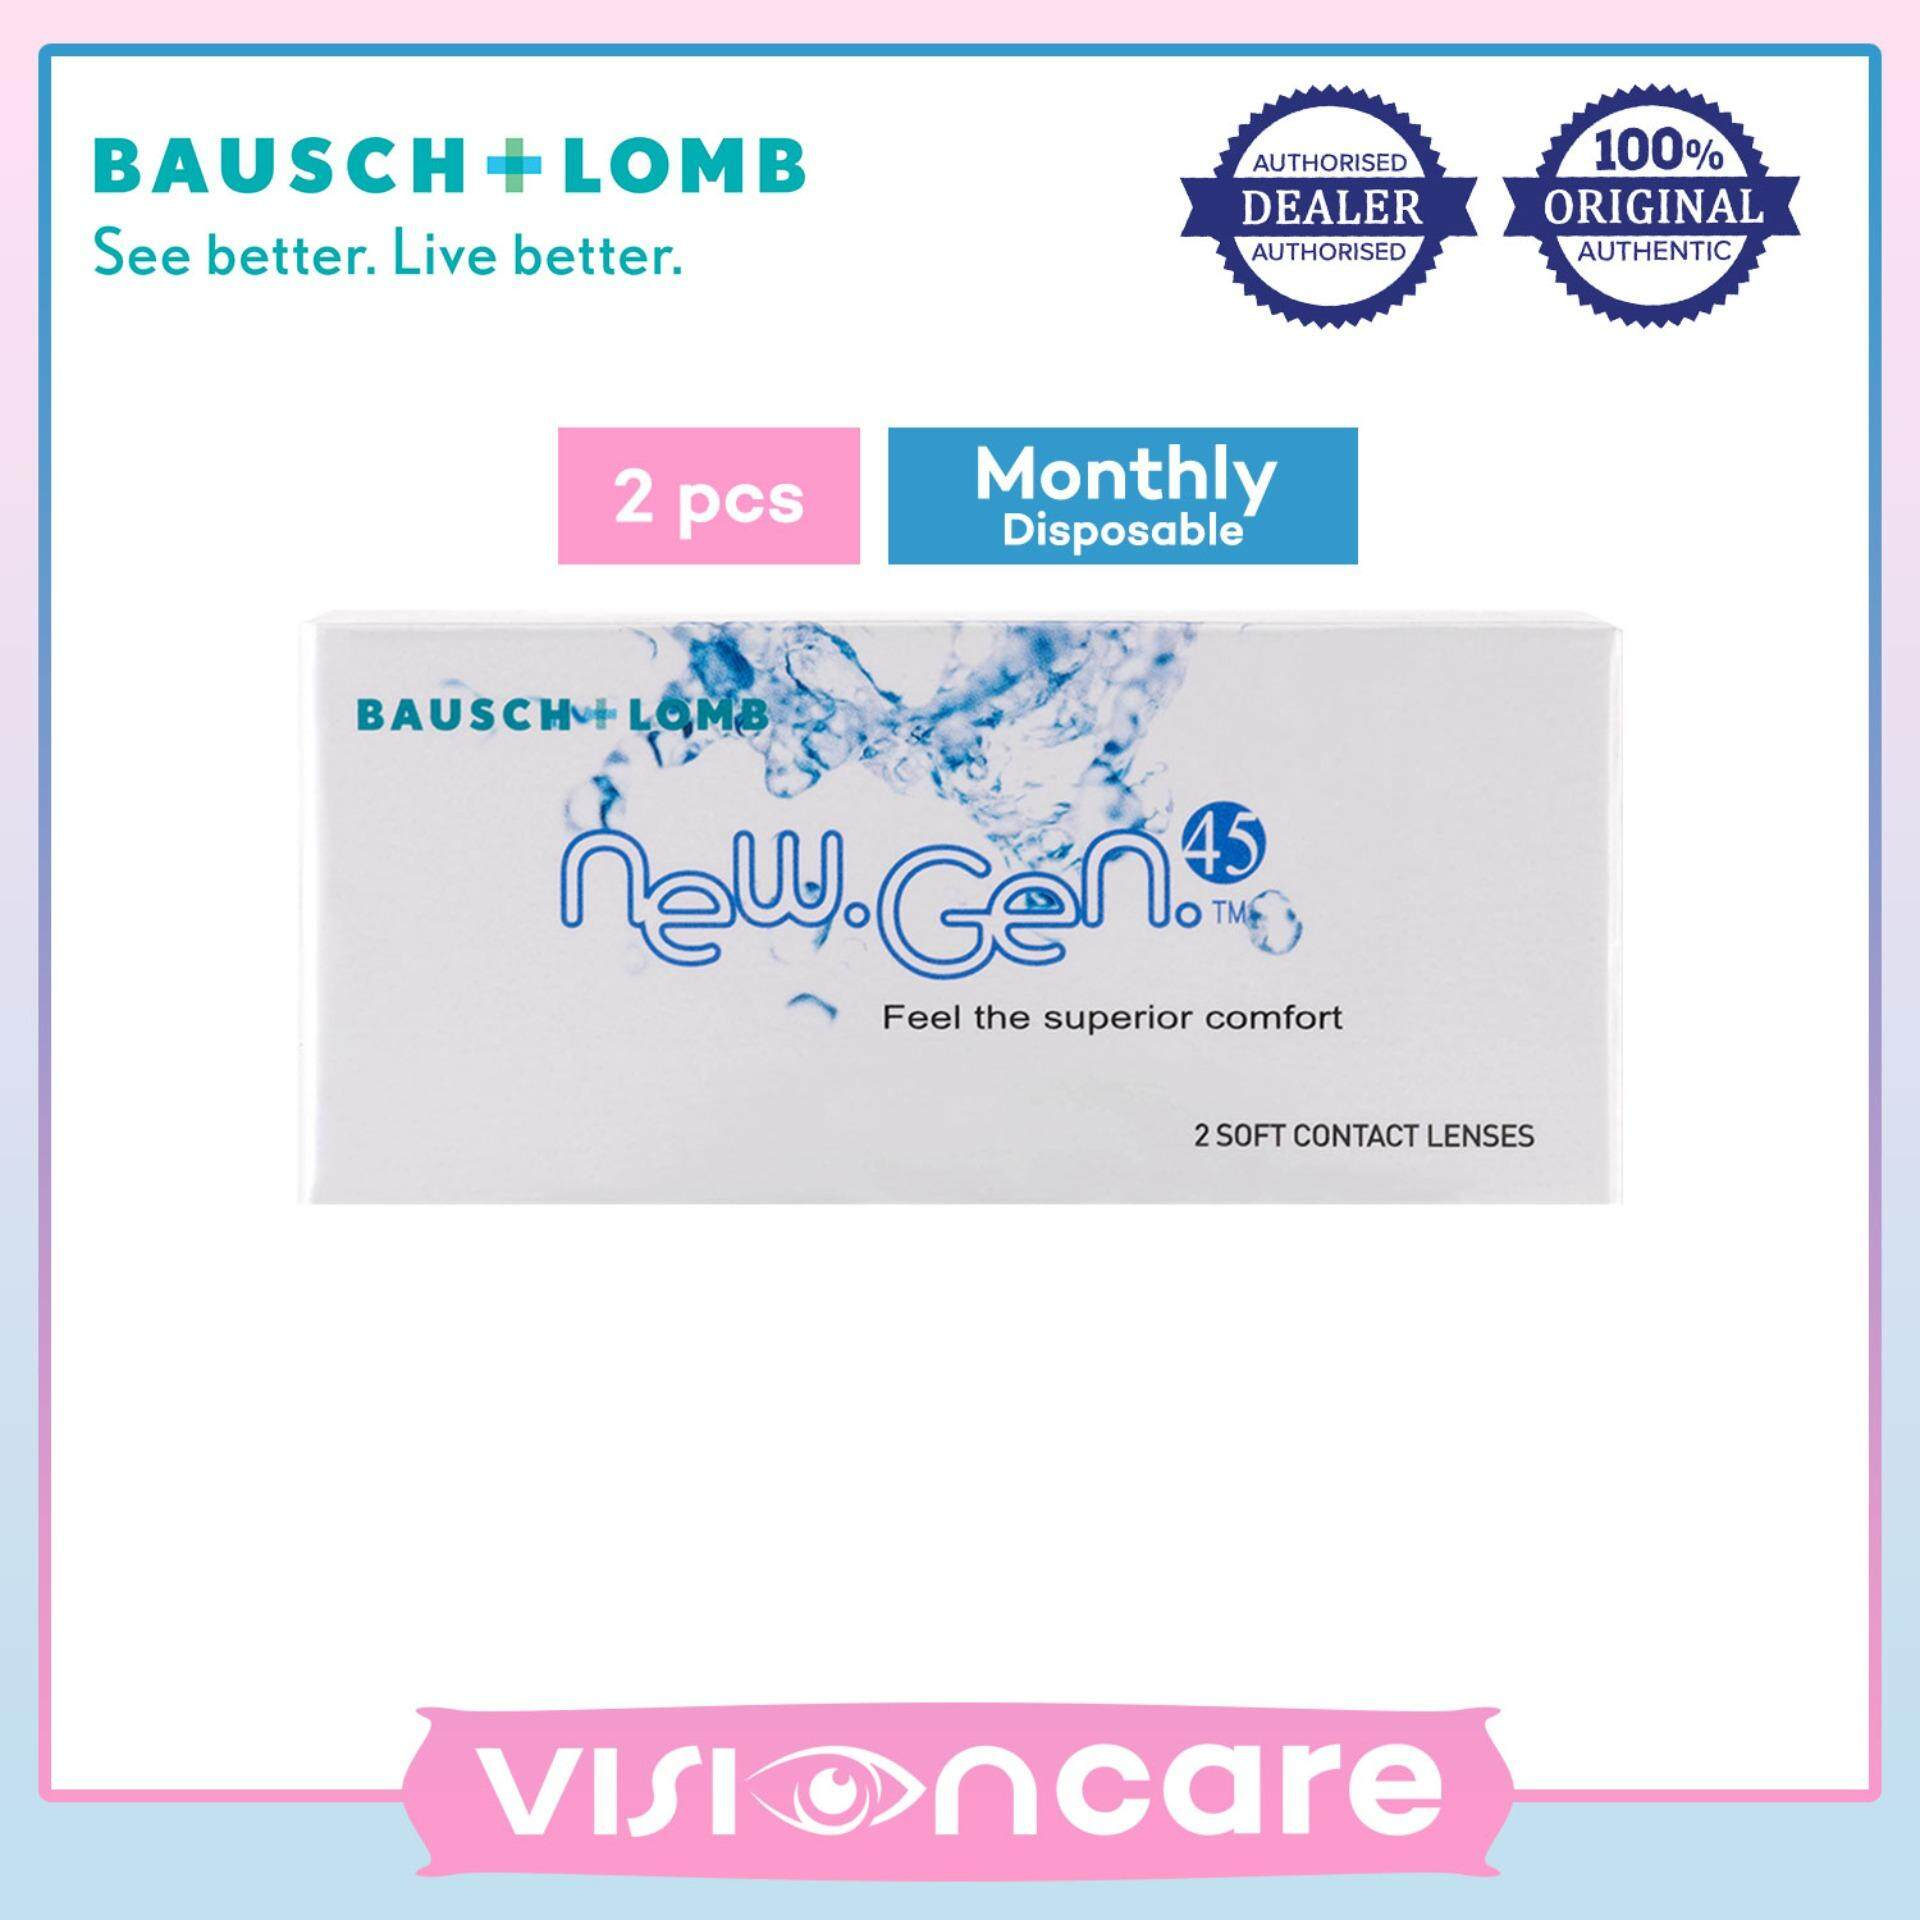 Bausch & Lomb New Gen 45 Monthly Contact Lenses